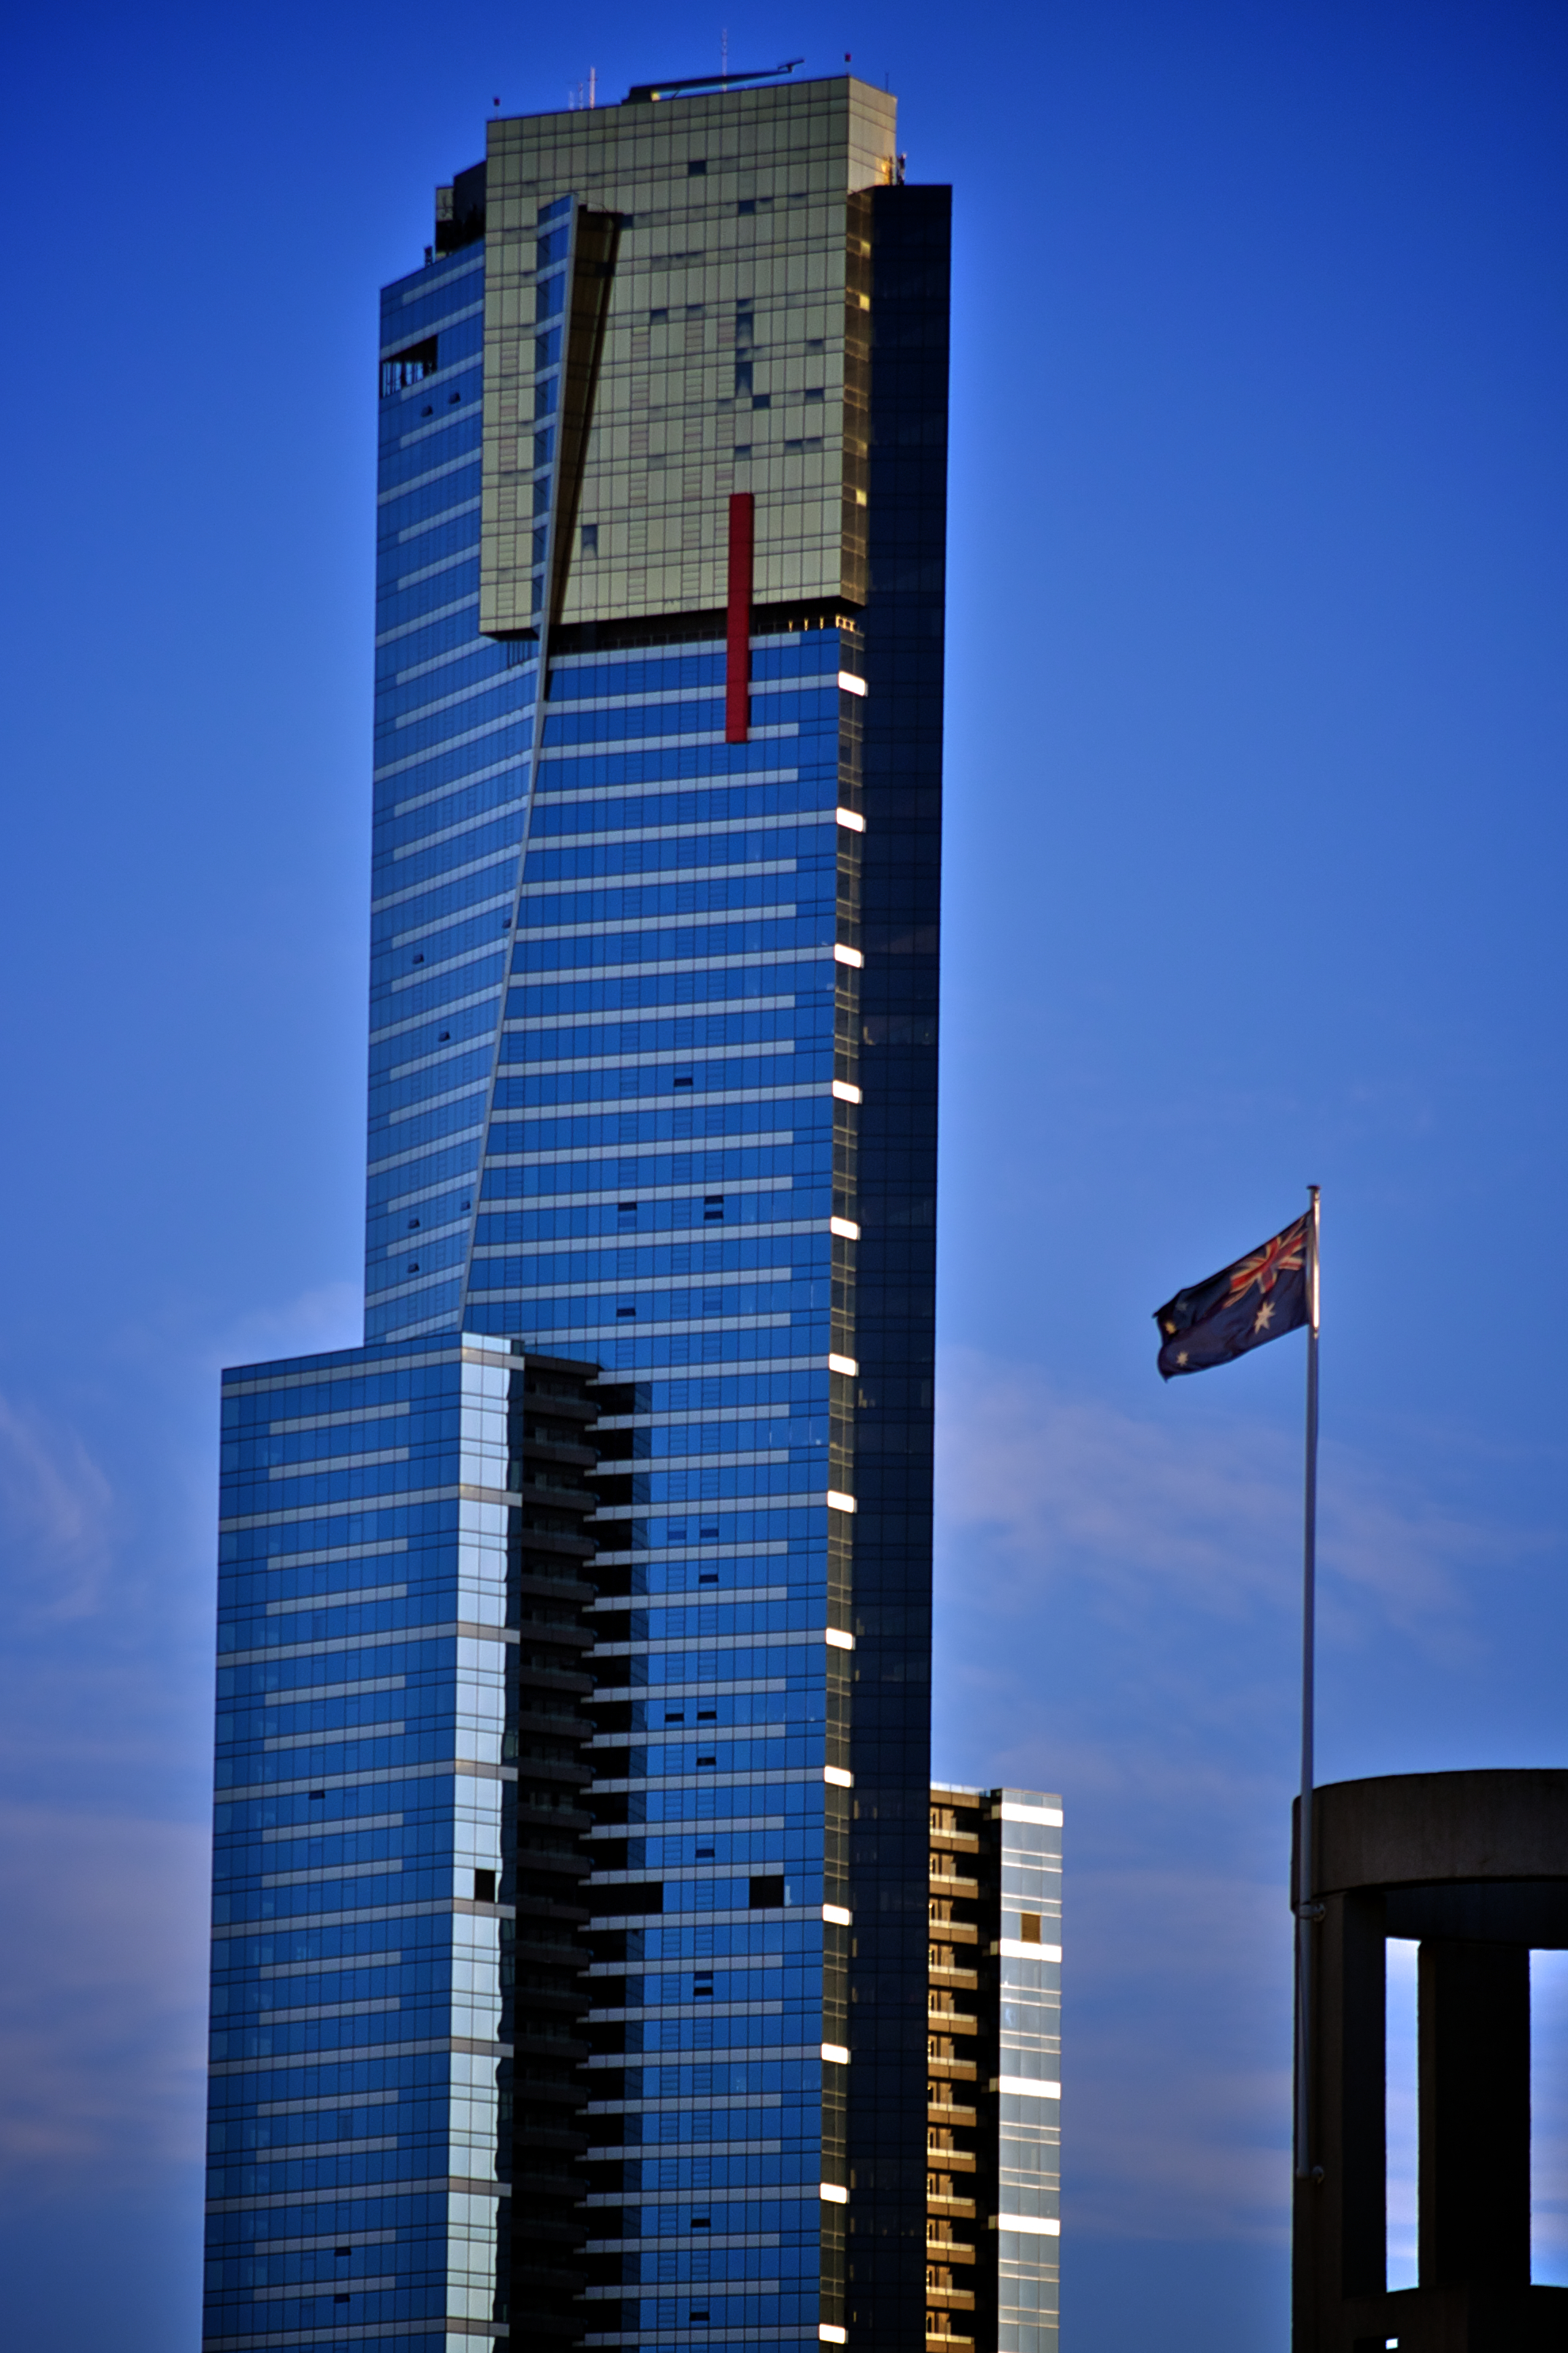 file eureka tower australian flag jpg wikimedia commons